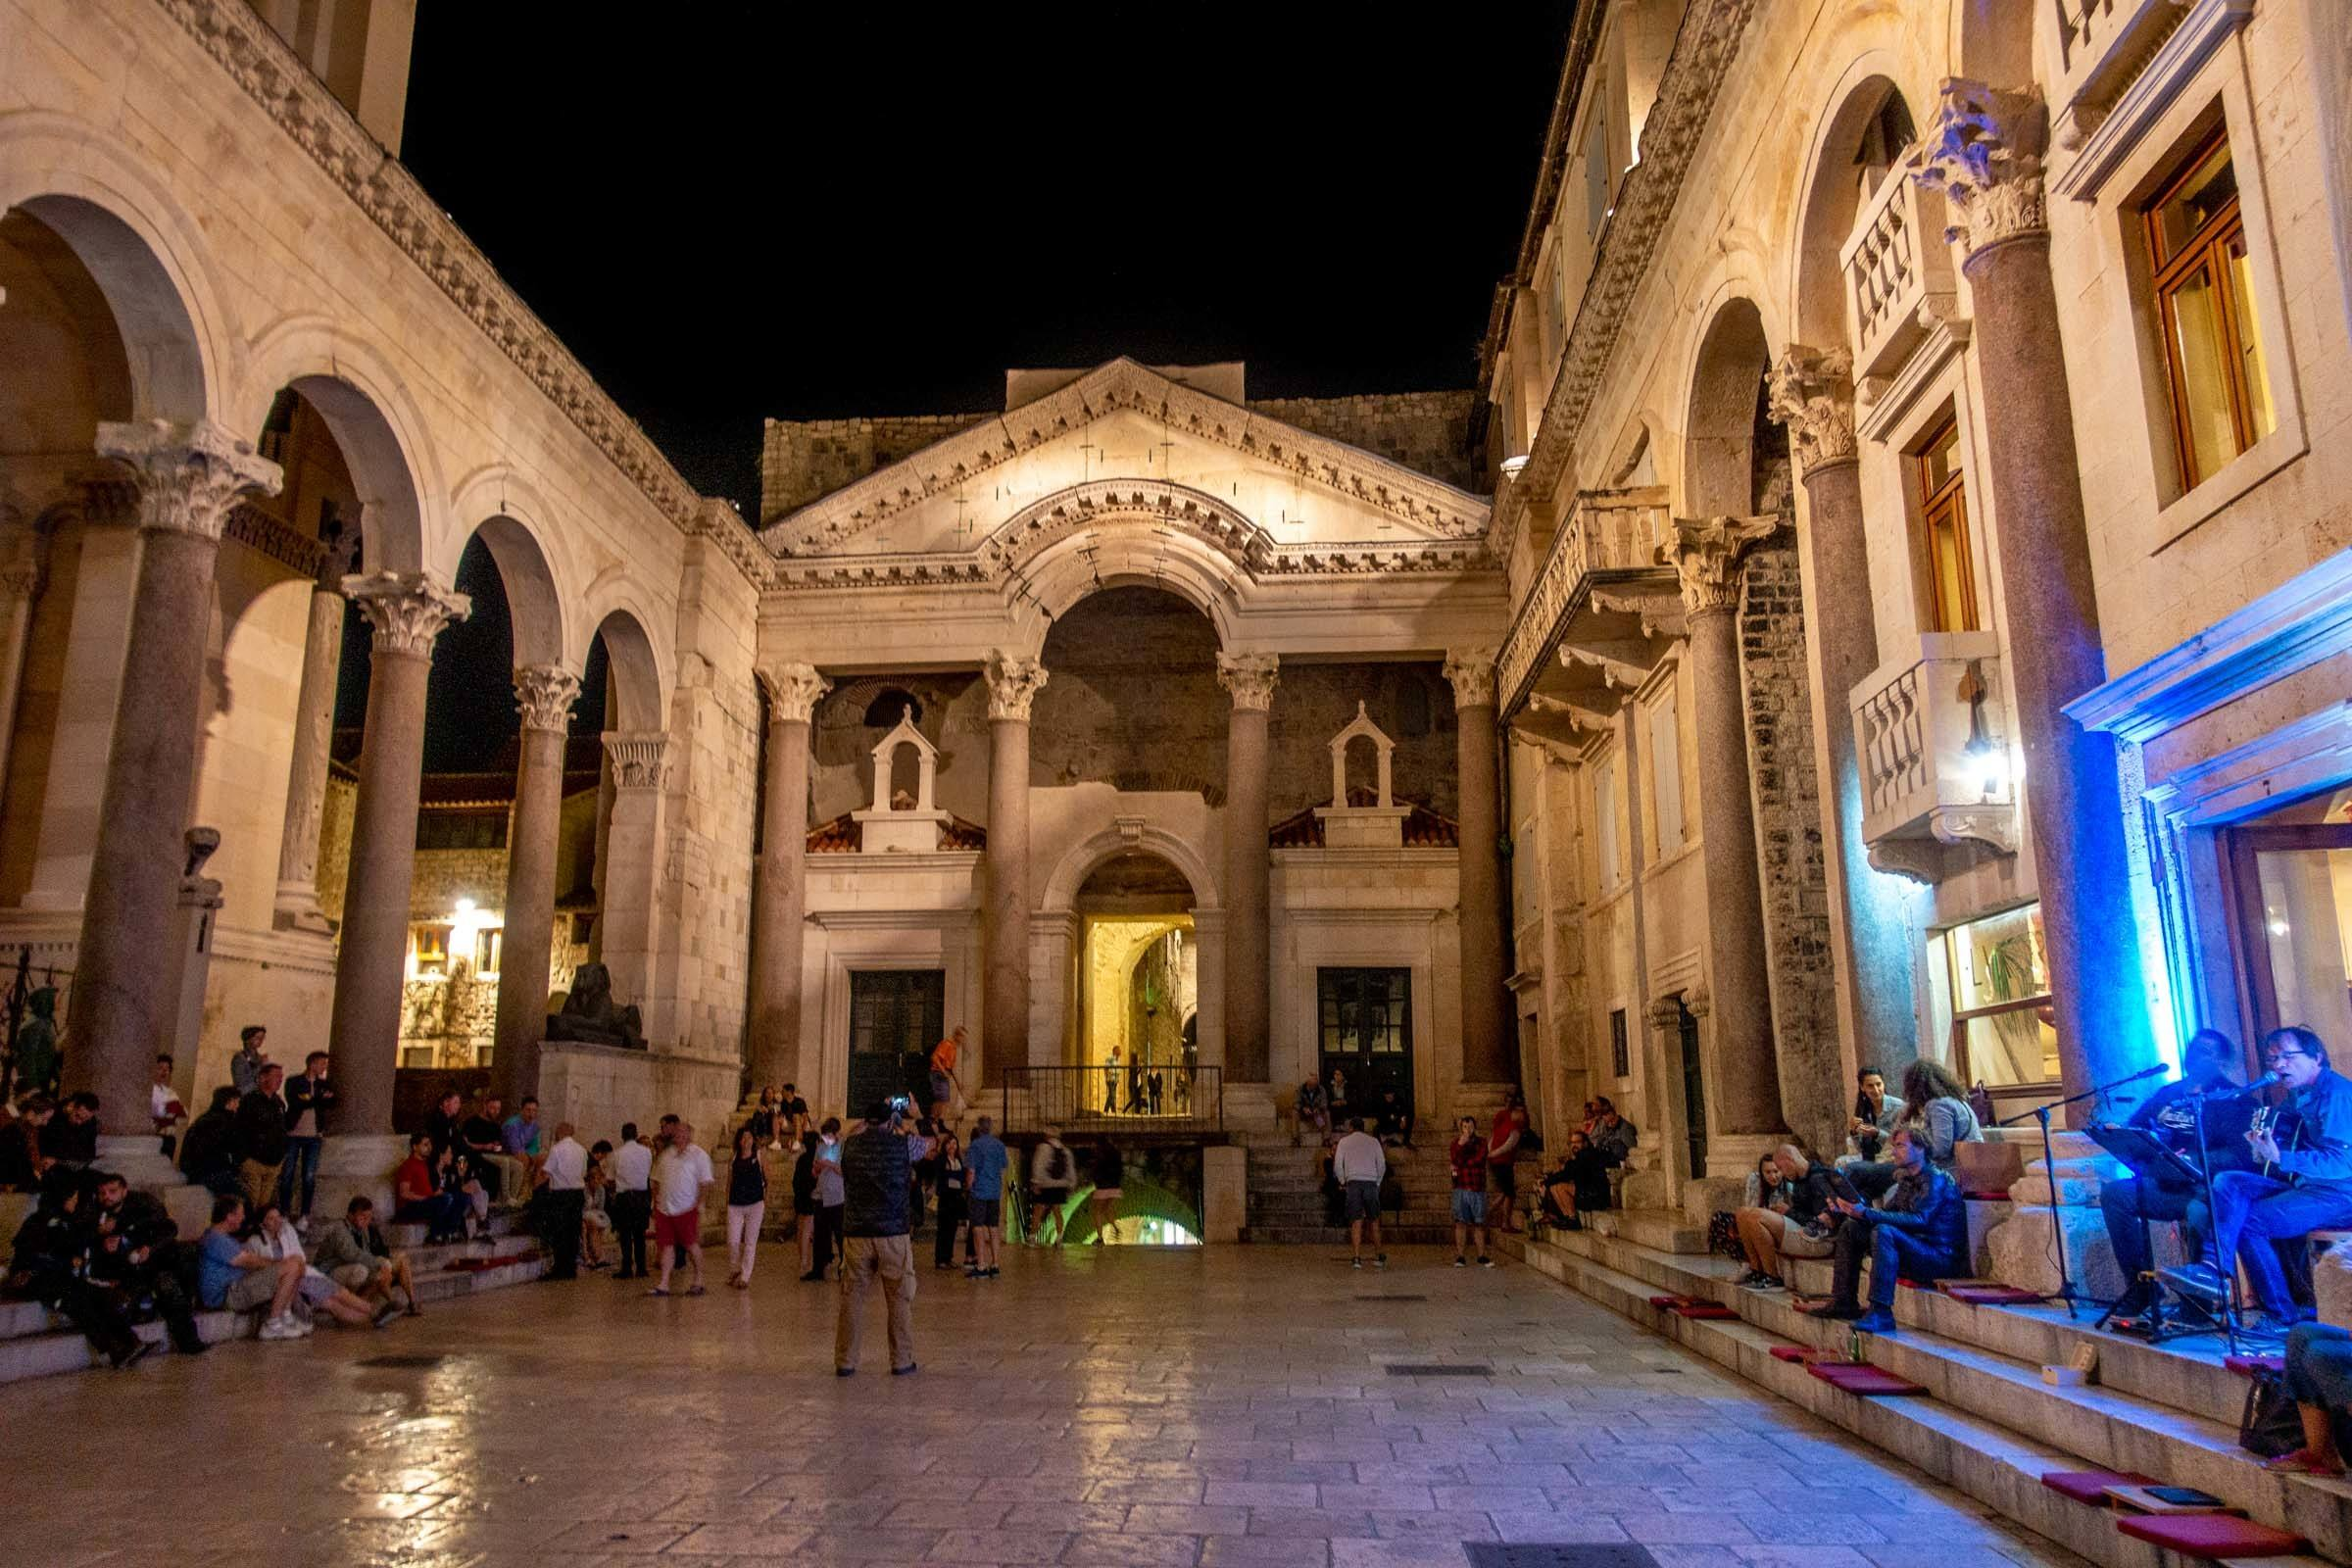 Marble peristyle courtyard of Diocletian's Palace filled with people at night